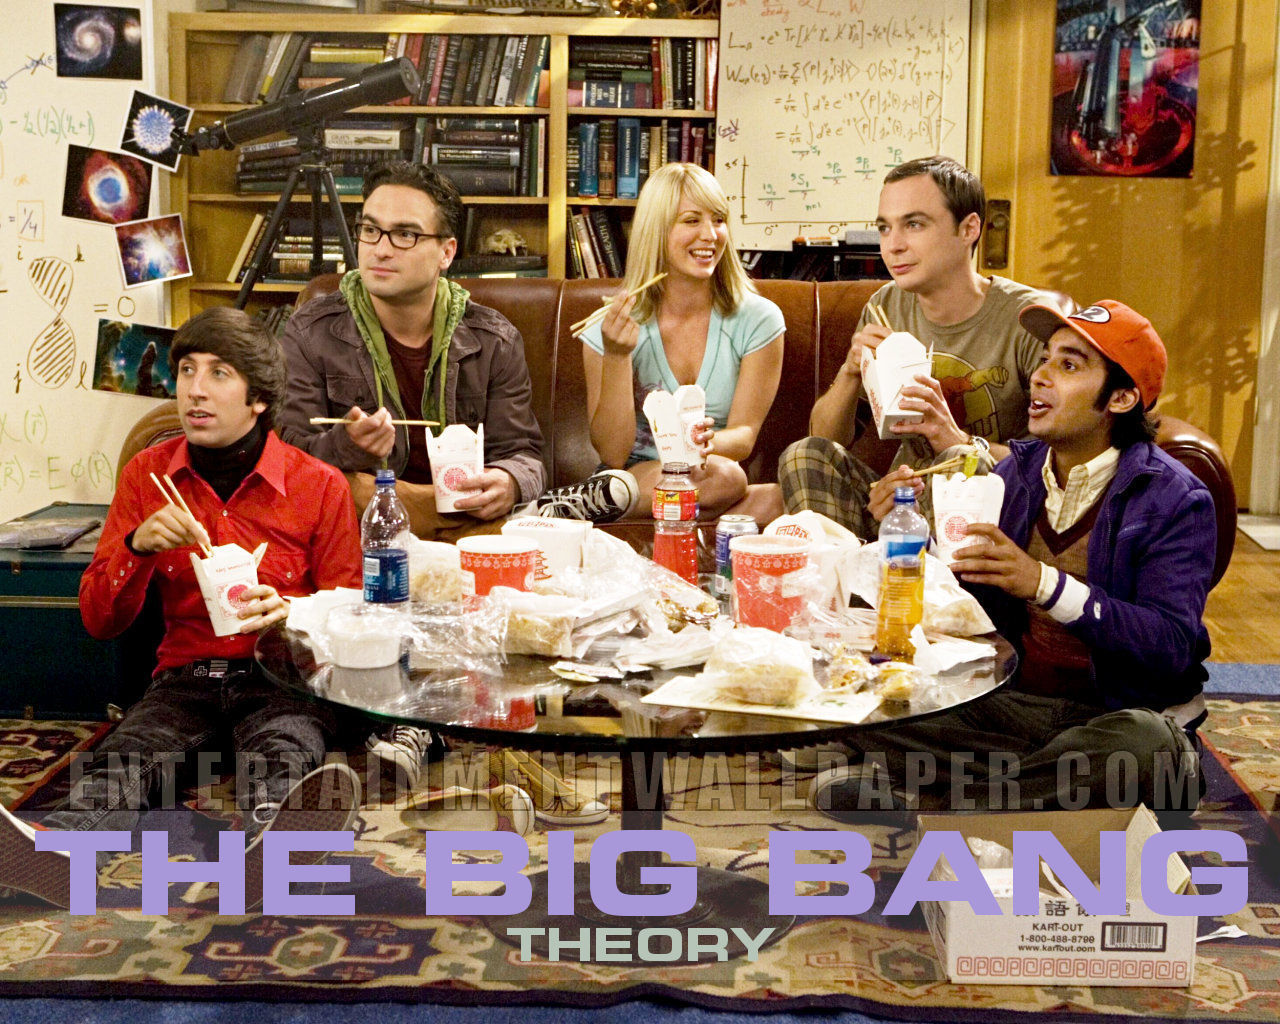 http://3.bp.blogspot.com/_H608iEh1dNo/TTdGT8-LFcI/AAAAAAAAABI/EGpJ3DL4Spo/s1600/TBBT-wallpaper-the-big-bang-theory-15234816-1280-1024.jpg